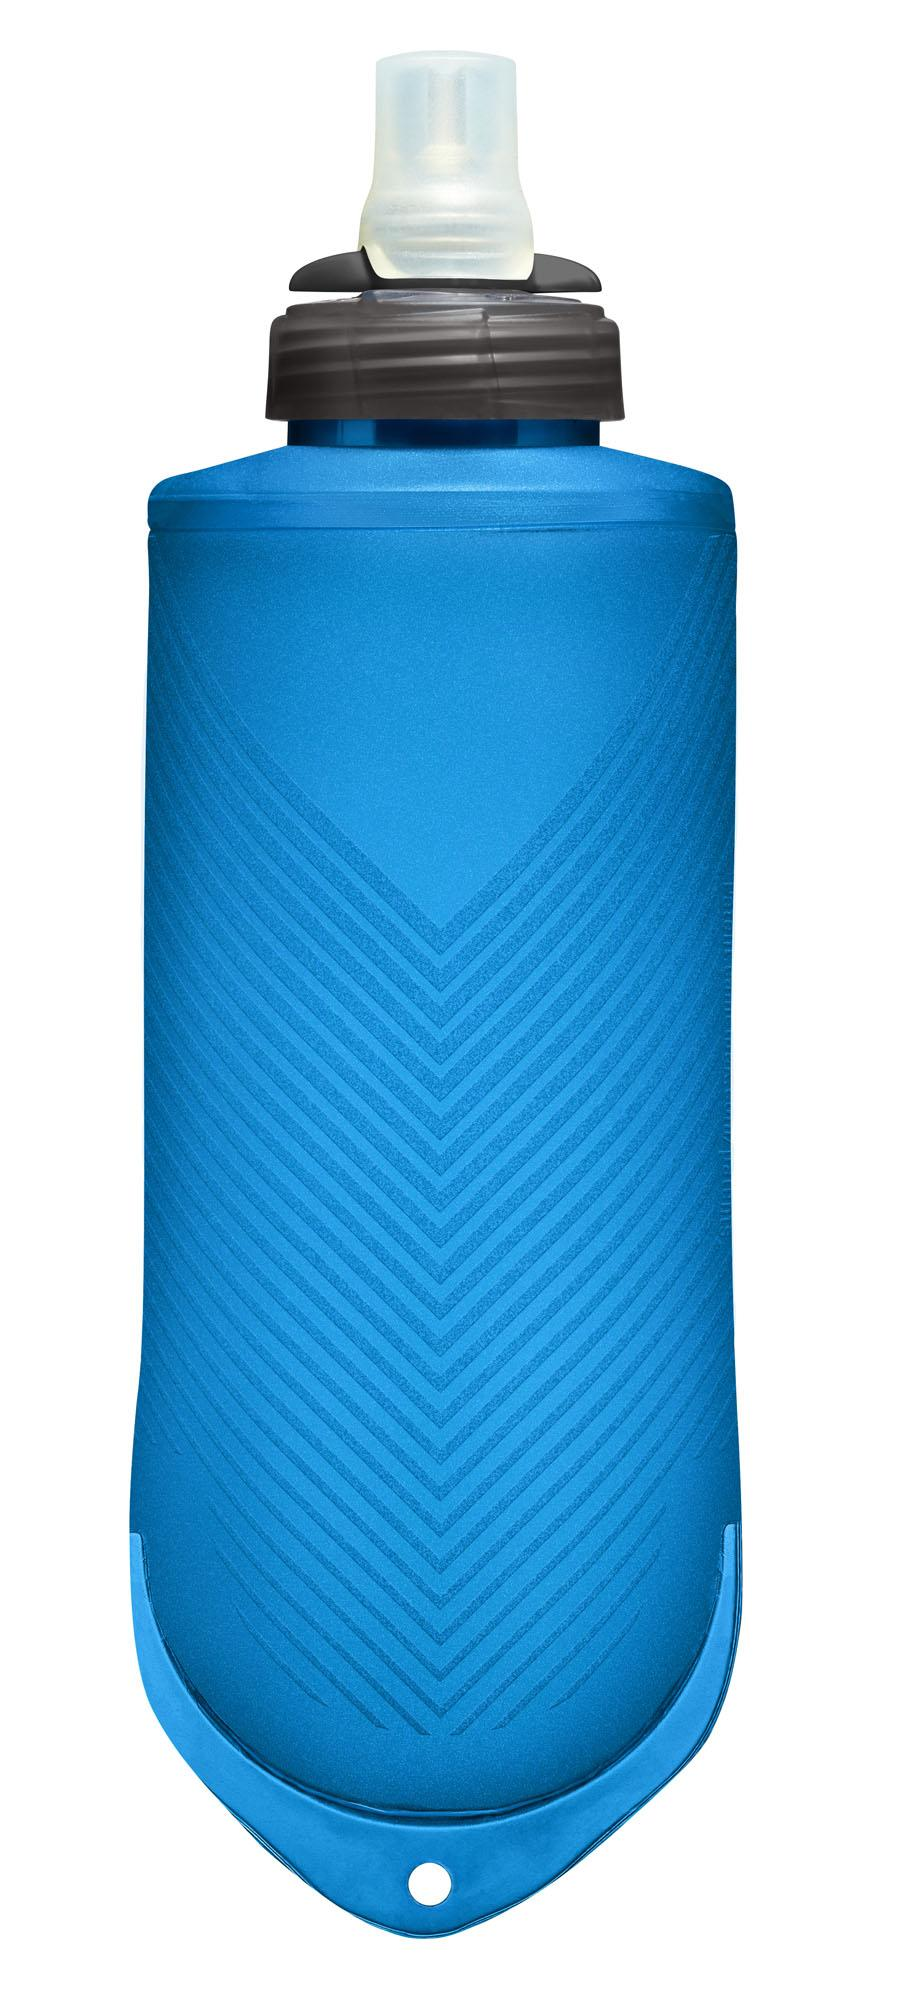 CamelBak Quick Stow flask in Blue